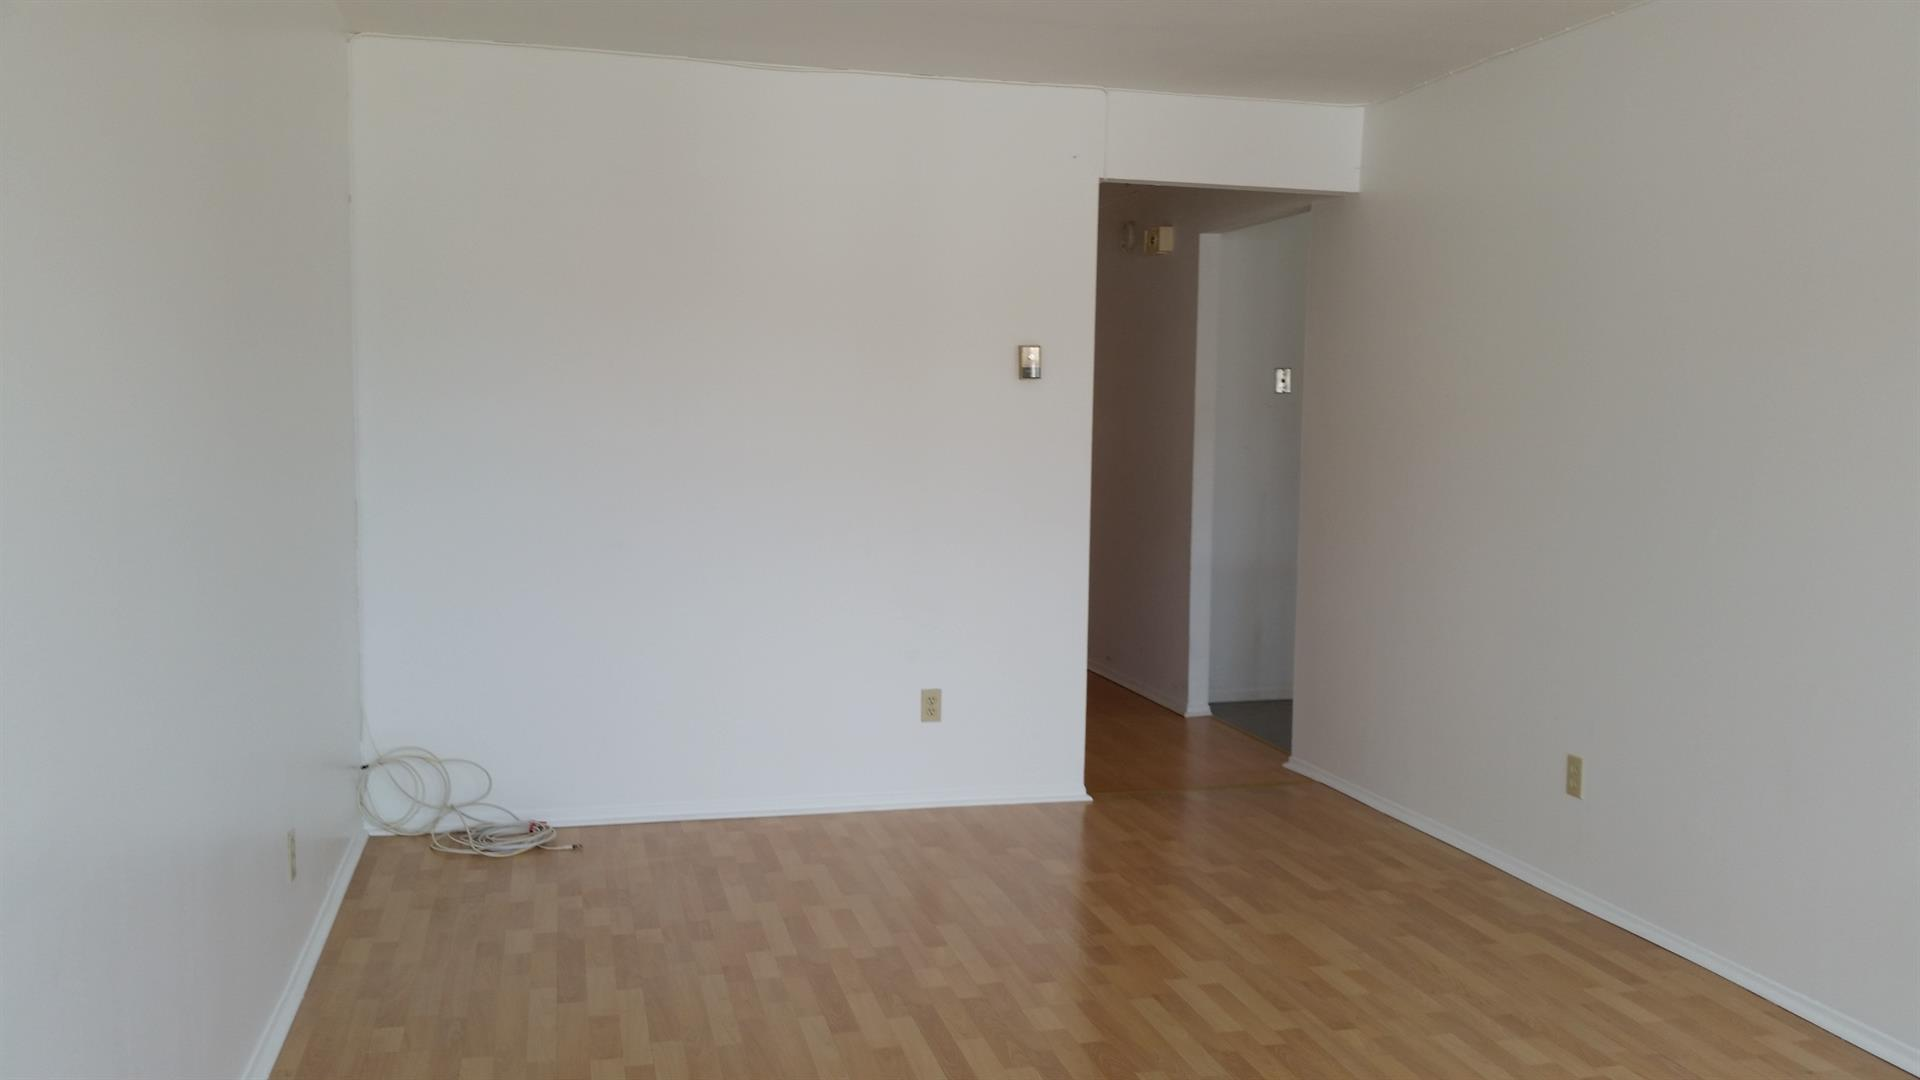 Additional photo for property listing at 40 Rutherford Pl.  Brooklyn, New York 11214 United States